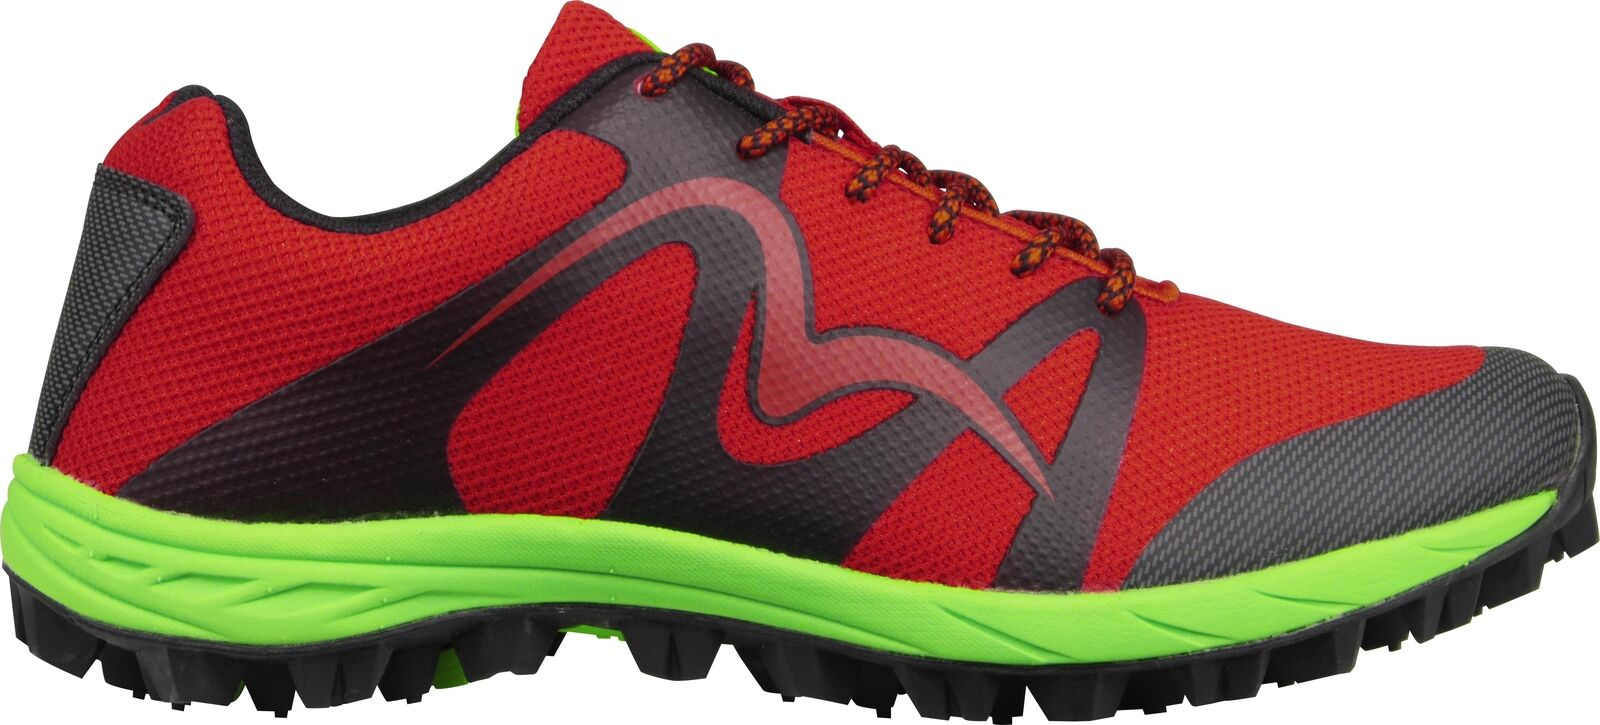 photos officielles 472bb 5f634 More Mile Cheviot 4 Mens Trail Running Shoes Offroad Trainers Red Fell  Racing